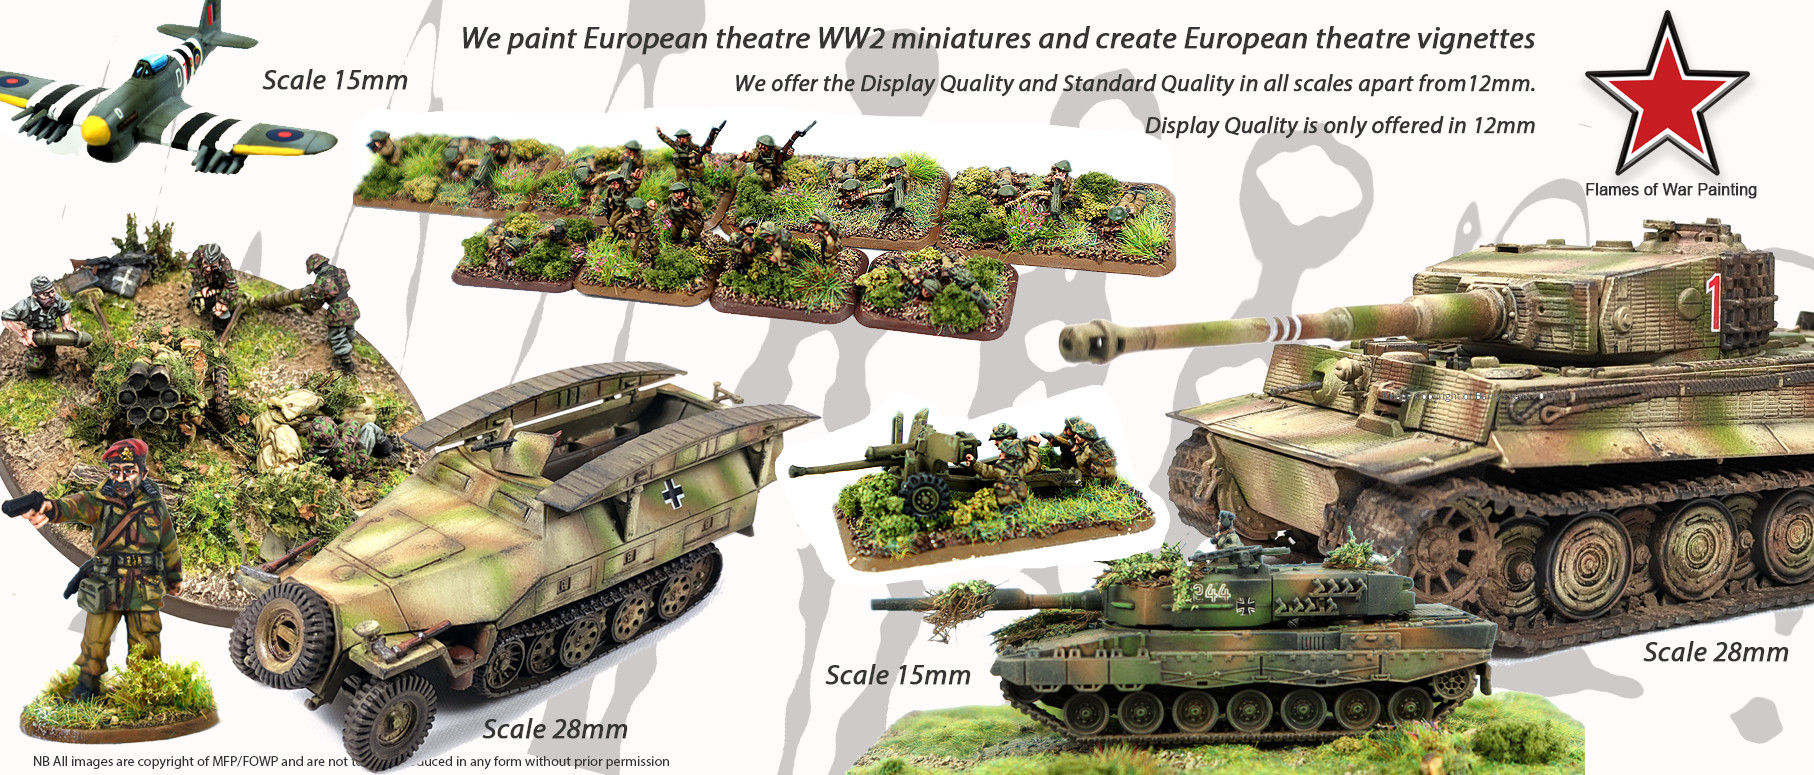 FOWP-15mm - 28mm miniatures european warfare